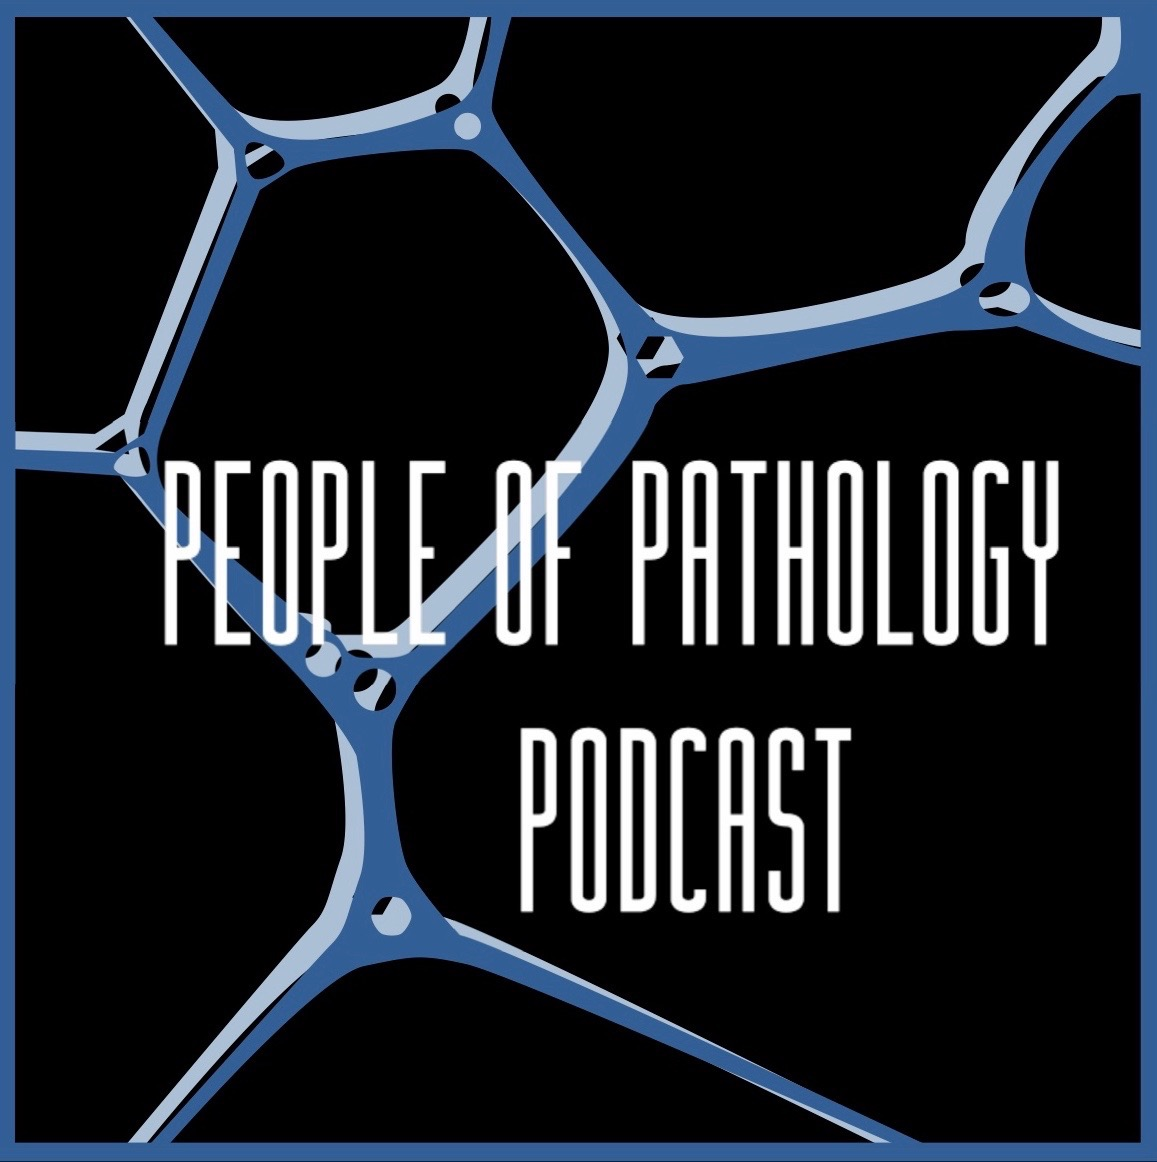 Dr Sharla White from ClearLight Bio Featured on People of Pathology Podcast